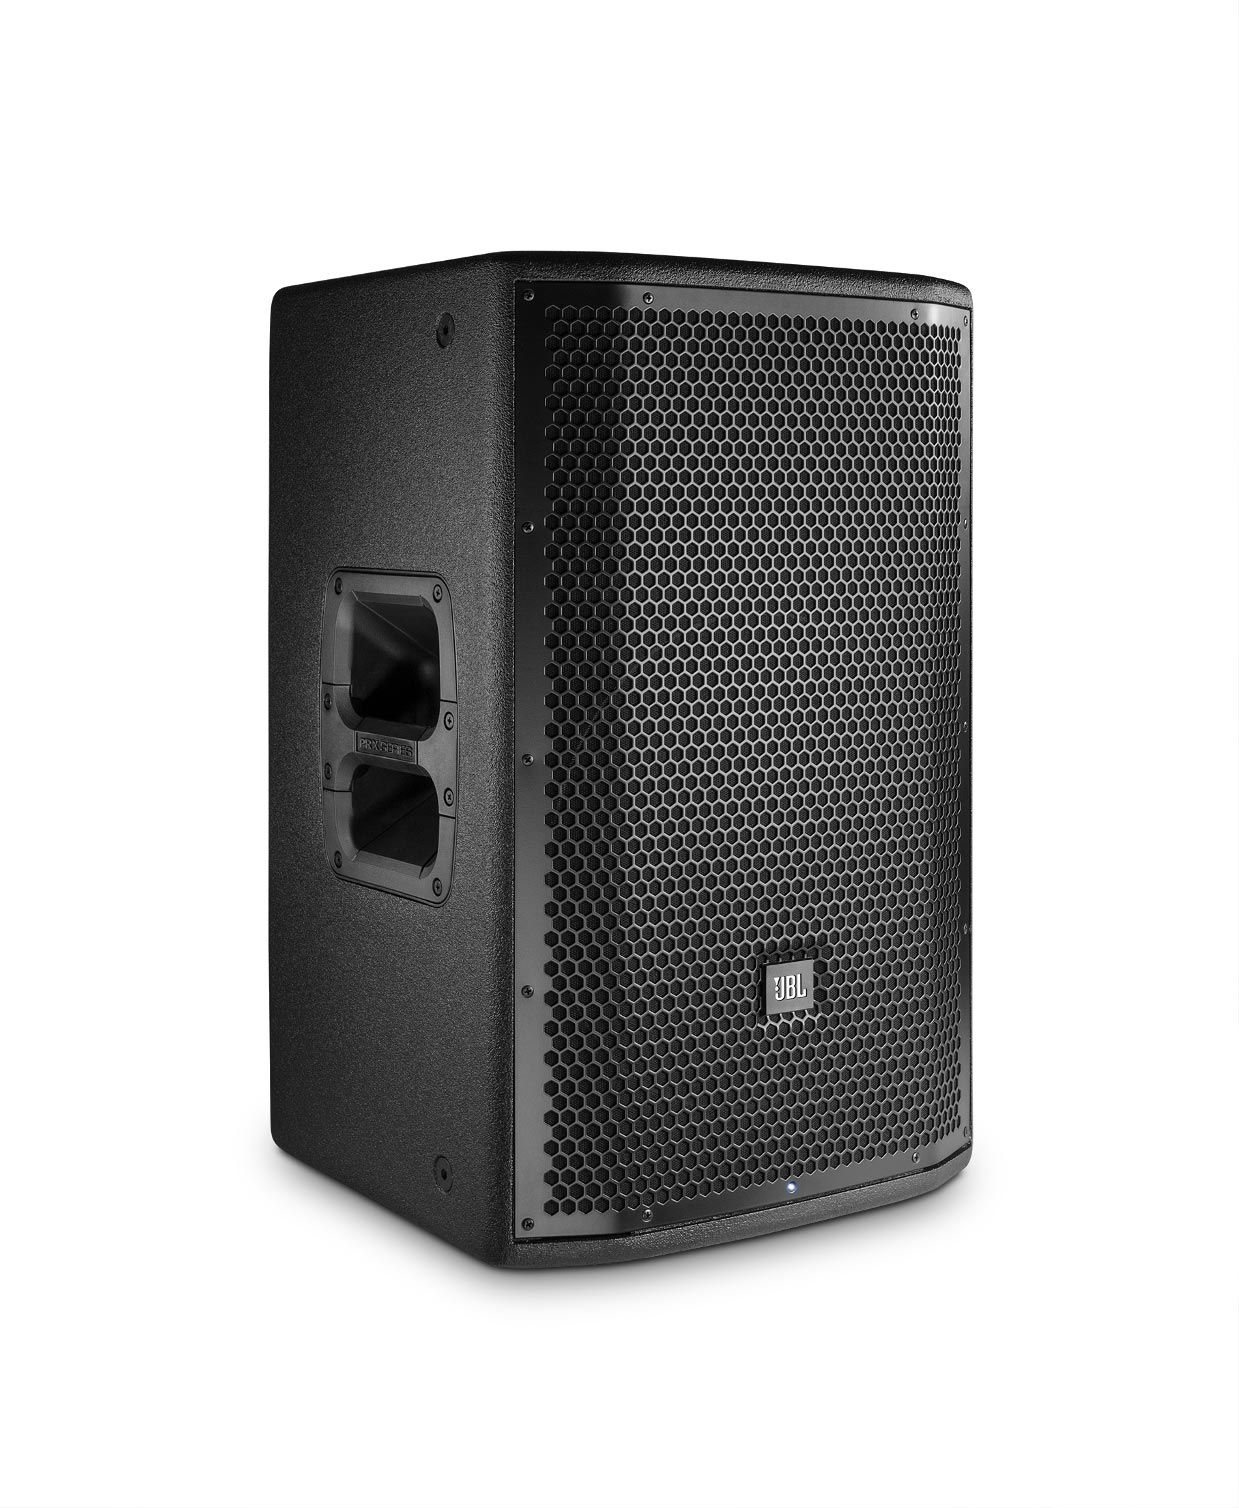 jbl prx812w 12 2 way 1500 watt powered full range speaker agiprodj. Black Bedroom Furniture Sets. Home Design Ideas